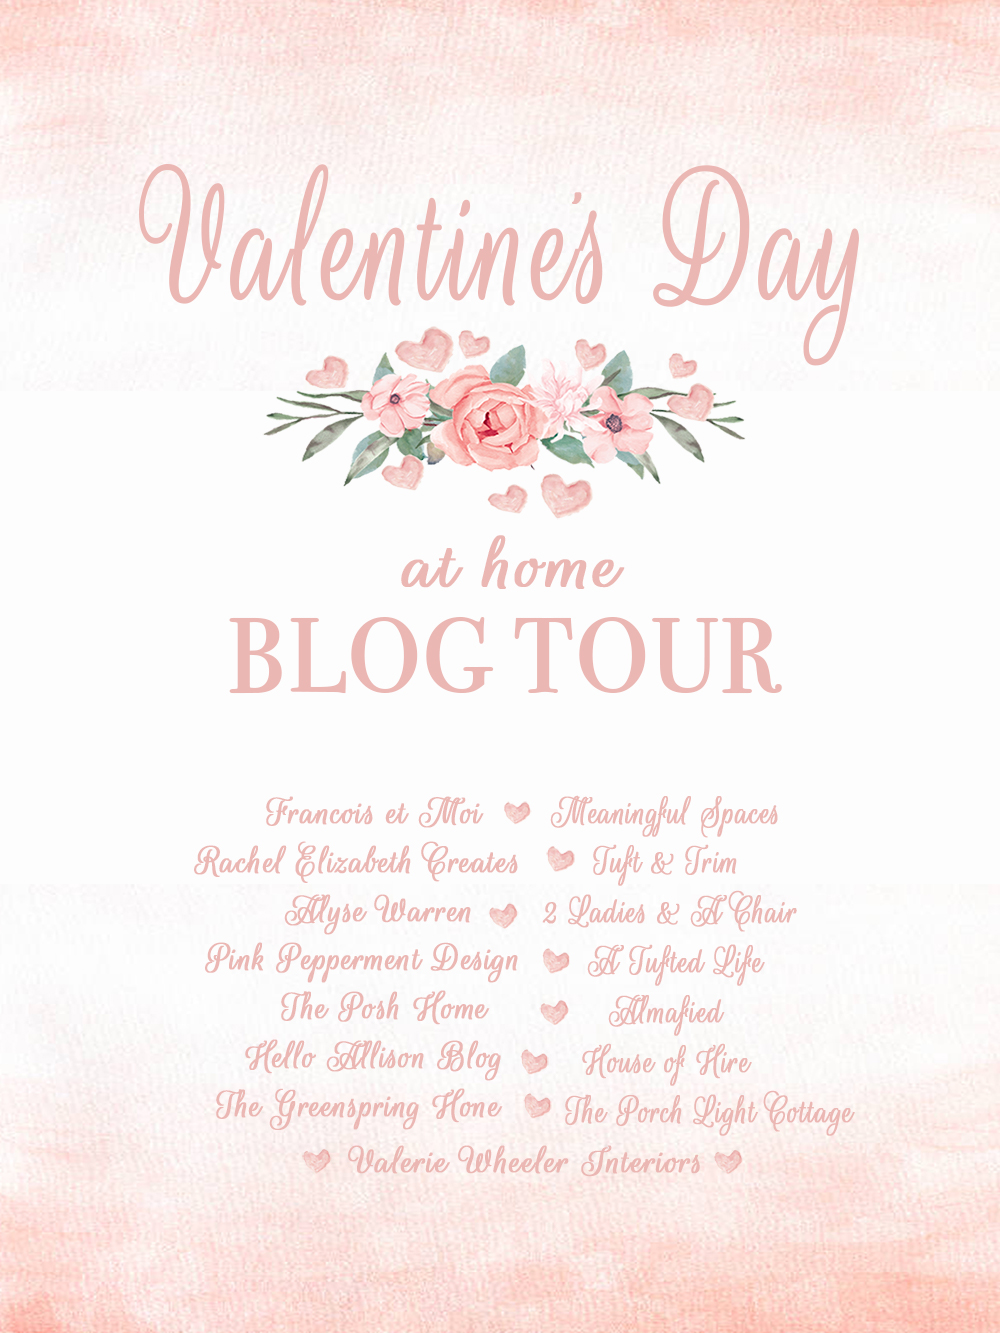 Pretty in Pink: Valentines Day at Home Blog Tour with Tuft & Trim